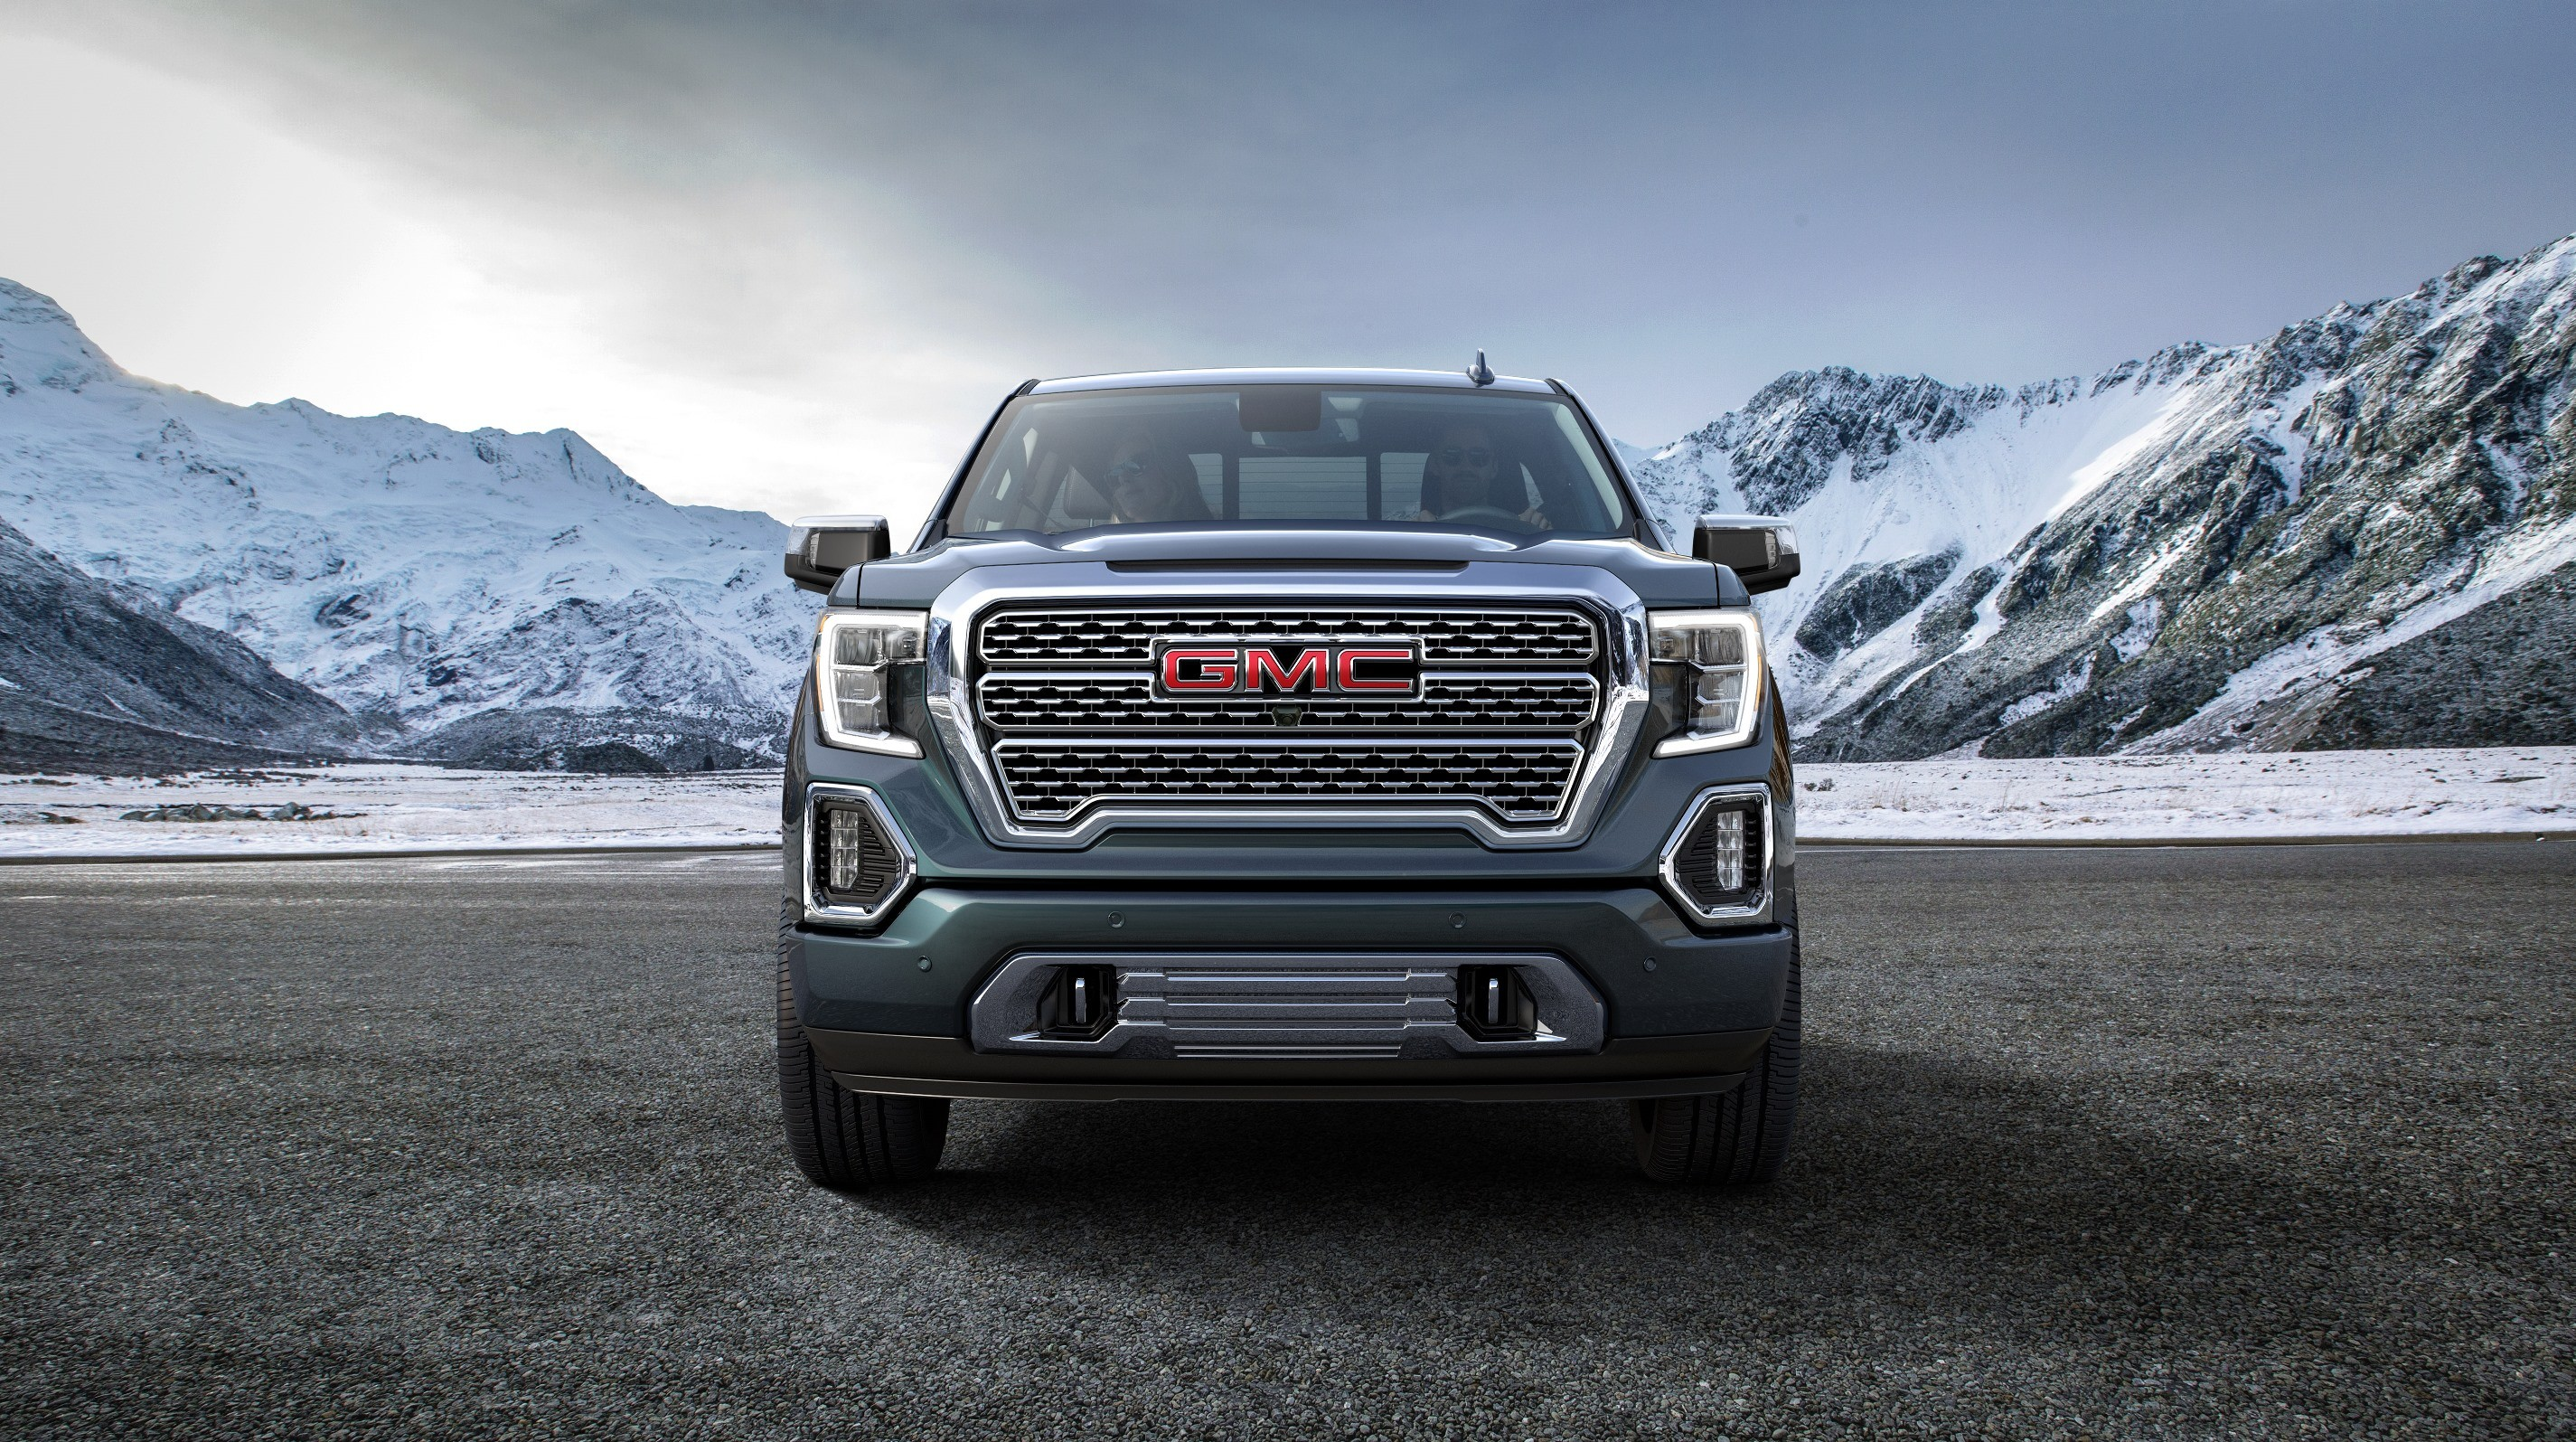 2019 GMC Sierra 1500 Goes Official With Carbon Fiber Bed - autoevolution